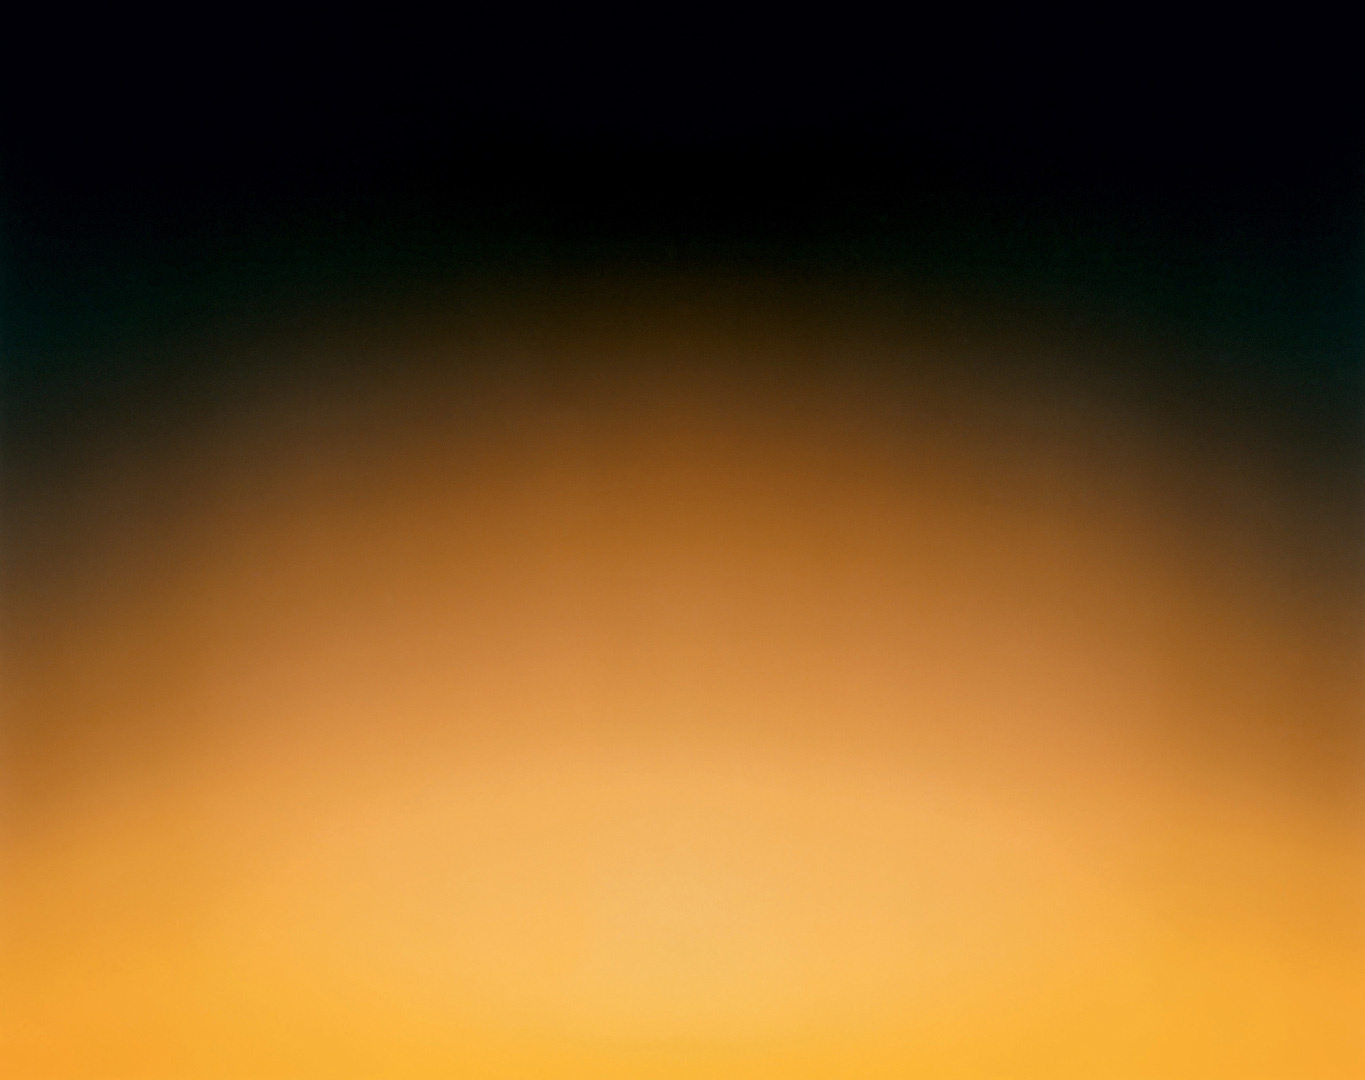 Andreas Gursky - Untitled II (Sunset), 1993, chromogenic print behind glass in artist's frame